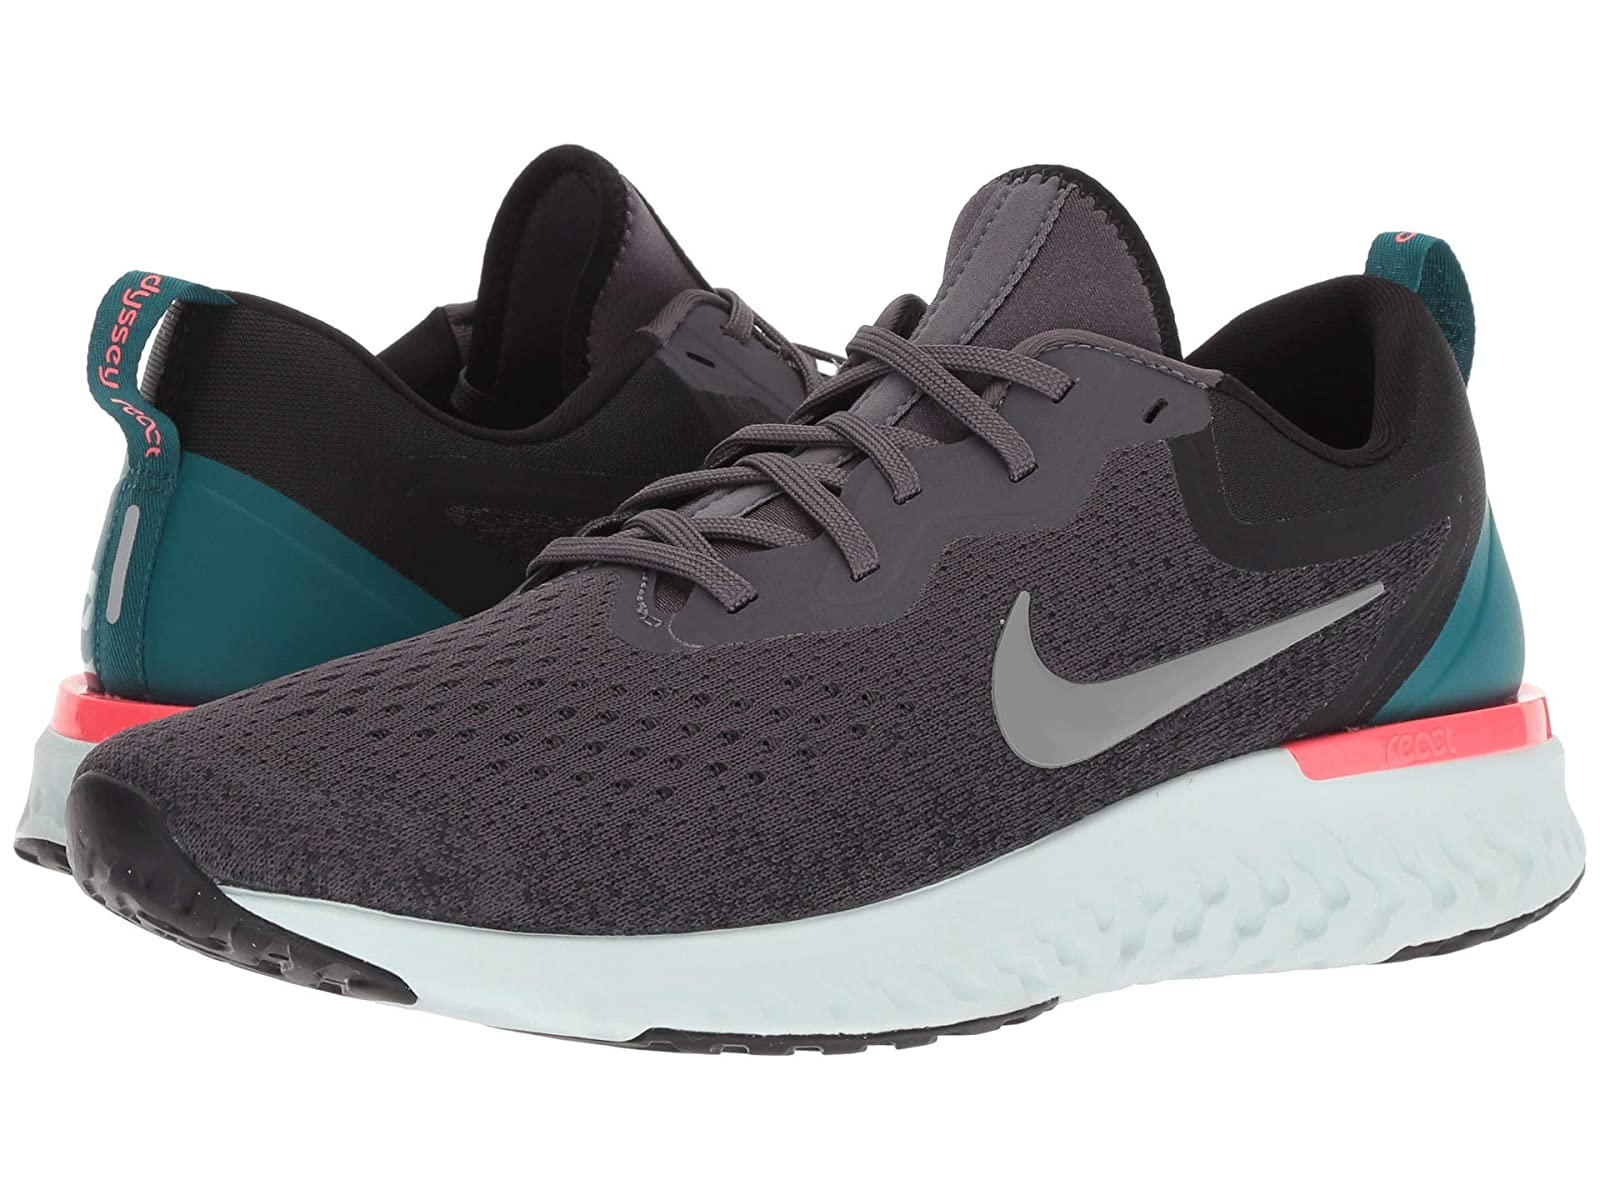 Nike Odyssey ReactAtmospheric grades have affordable shoes